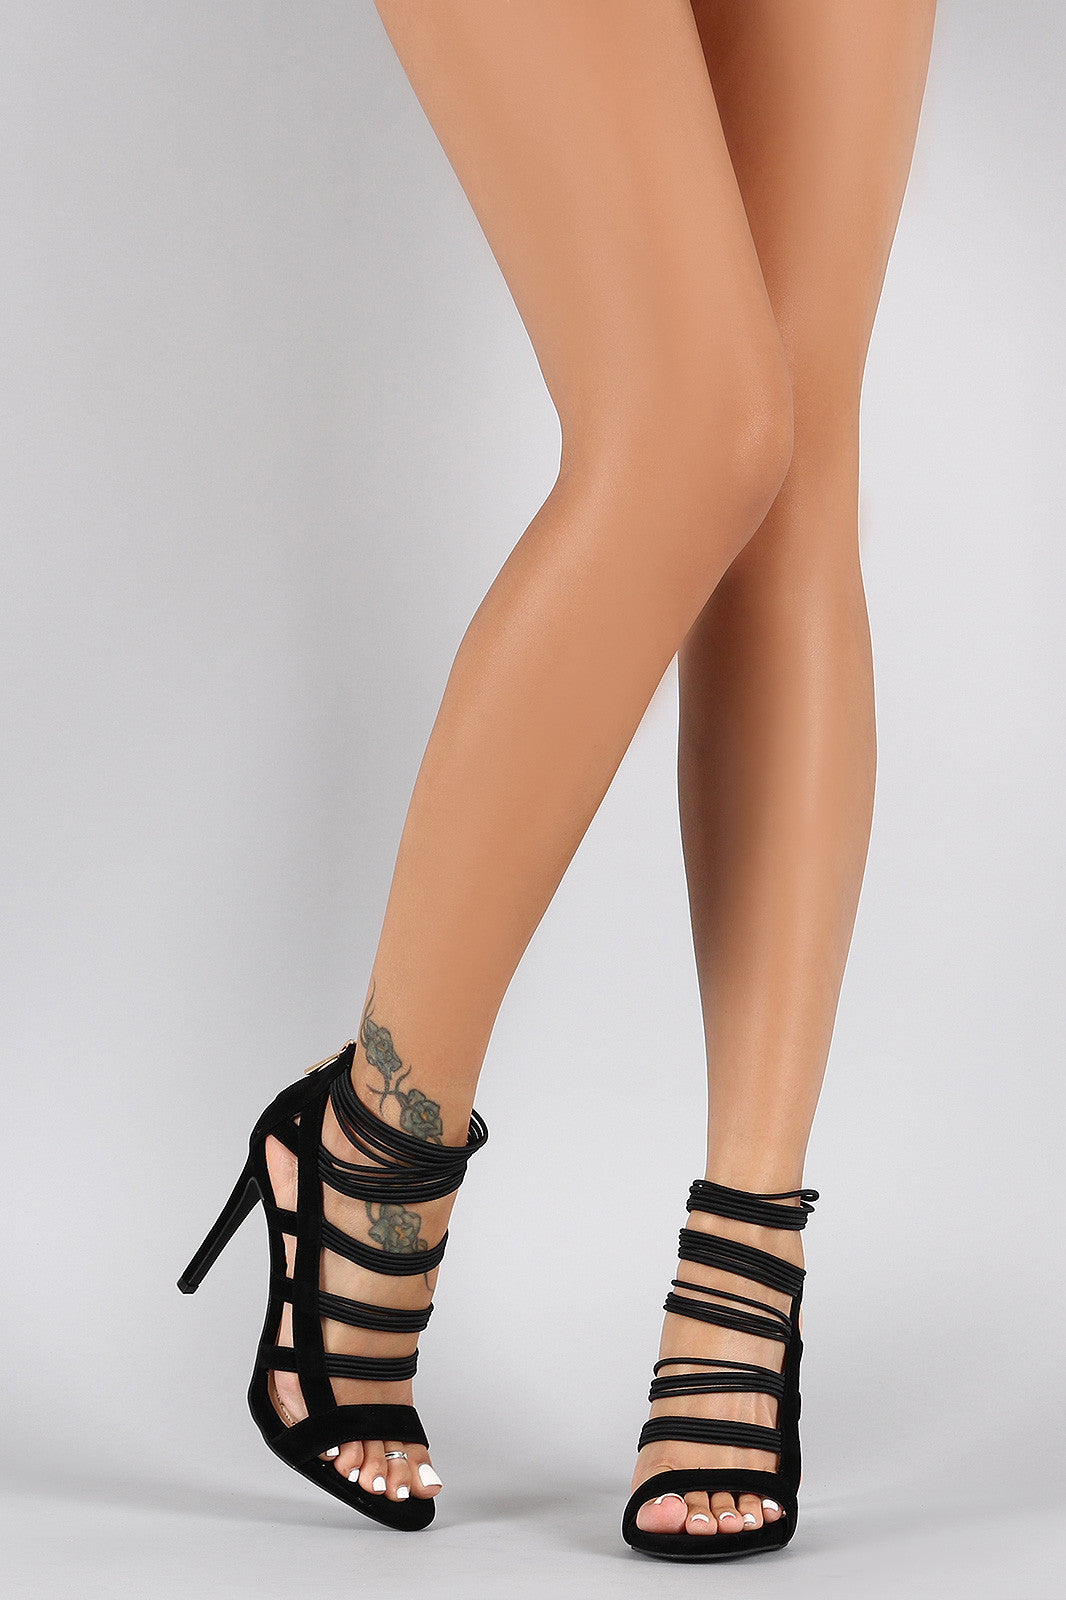 Anne Michelle Strappy Cage Cushioned Open Toe Heel - Thick 'N' Curvy Shop - 6